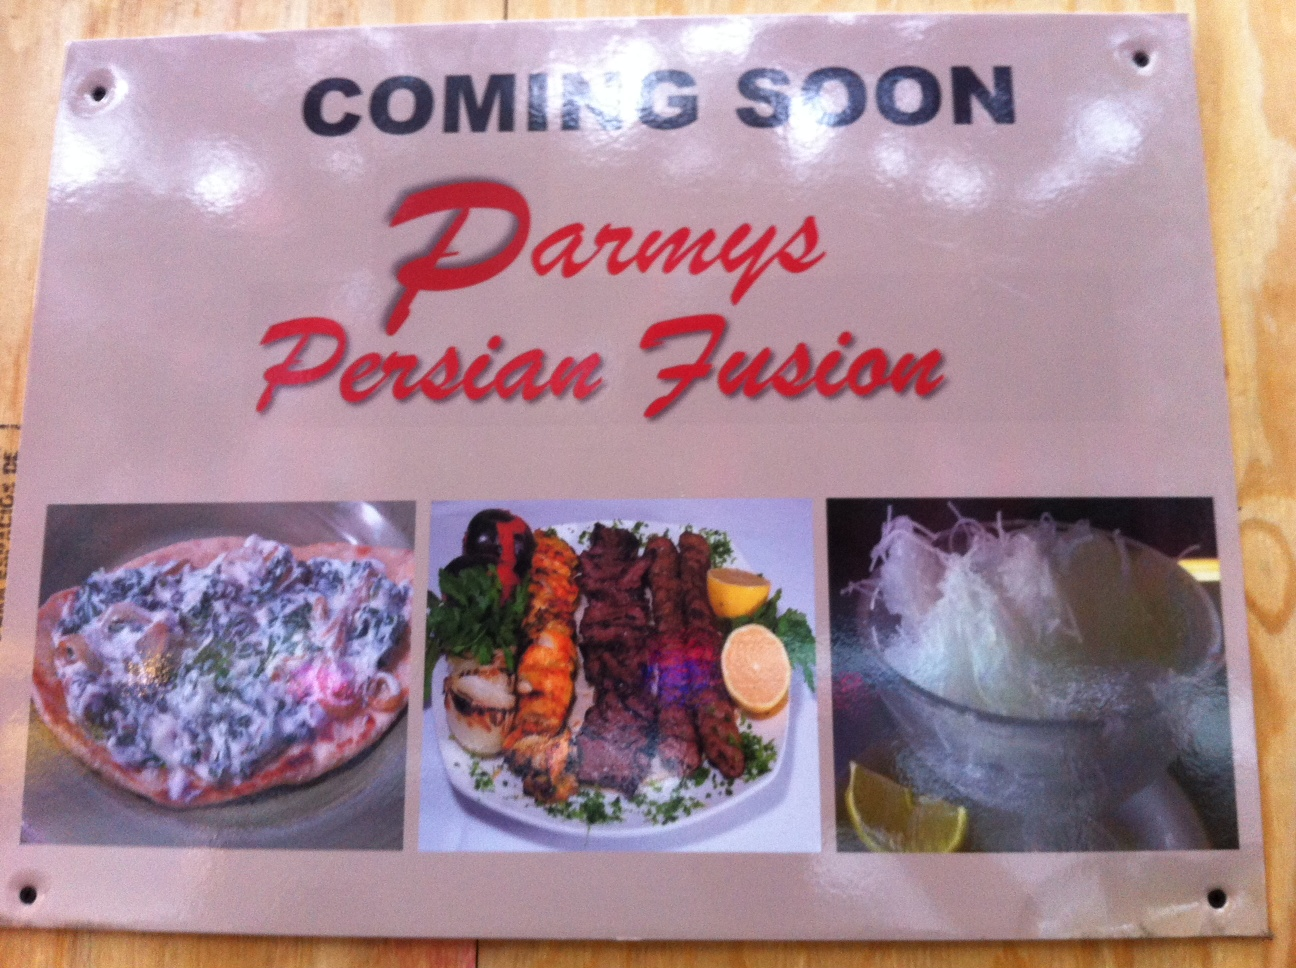 Ev grieve parmys persian fusion coming soon to first avenue the restaurant has applied for a liquor license they appear on this months cb3sla agenda you can read more about the plans on the application pdf forumfinder Choice Image